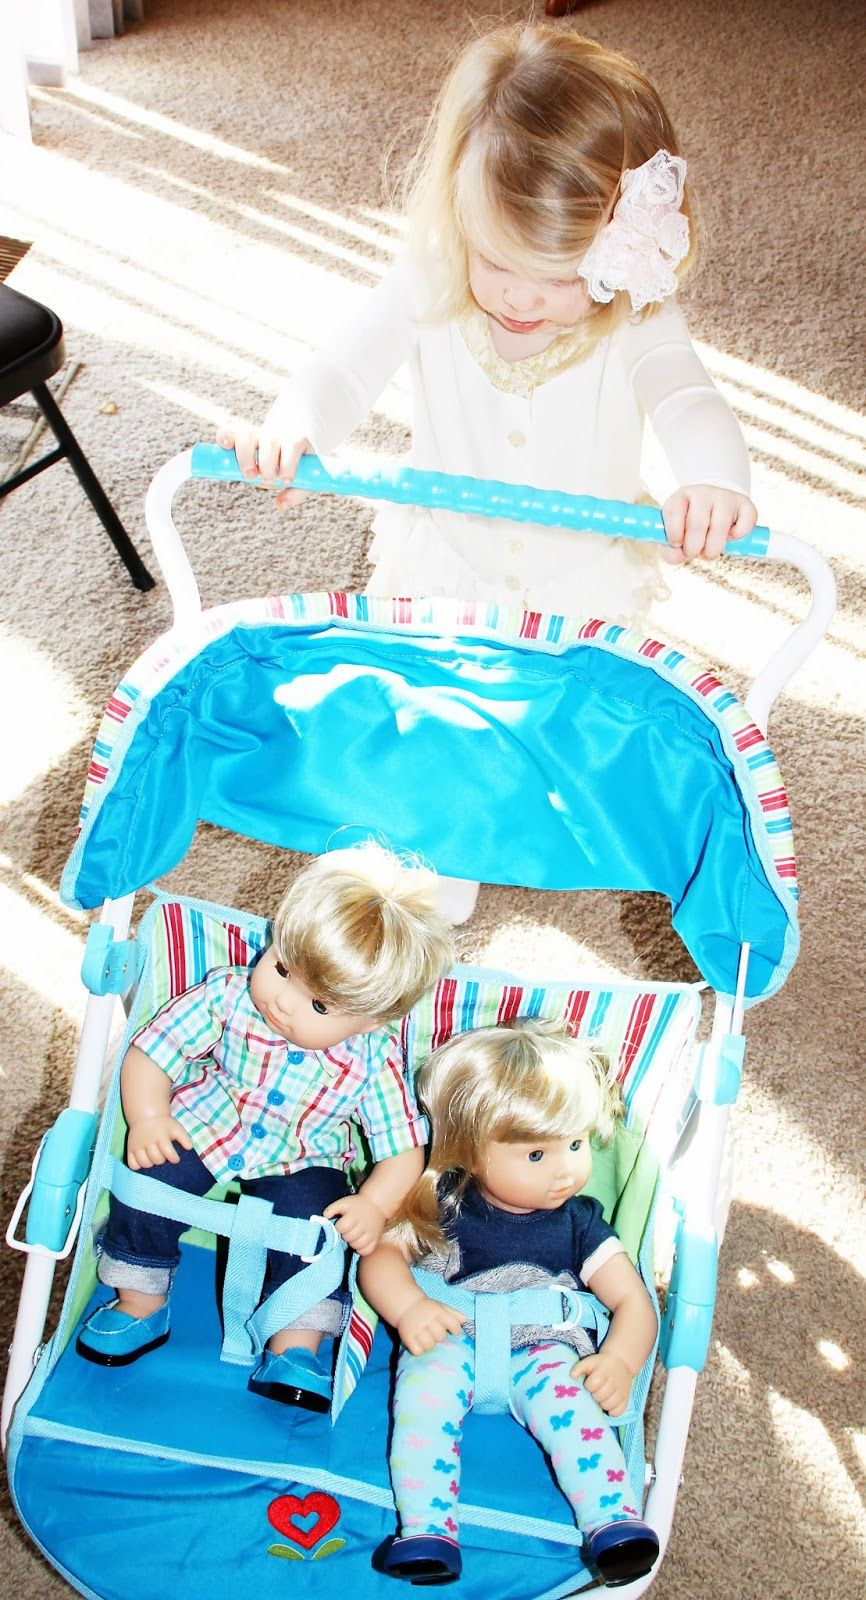 American Girl Doll Bitty Twins and Stroller Bitty baby